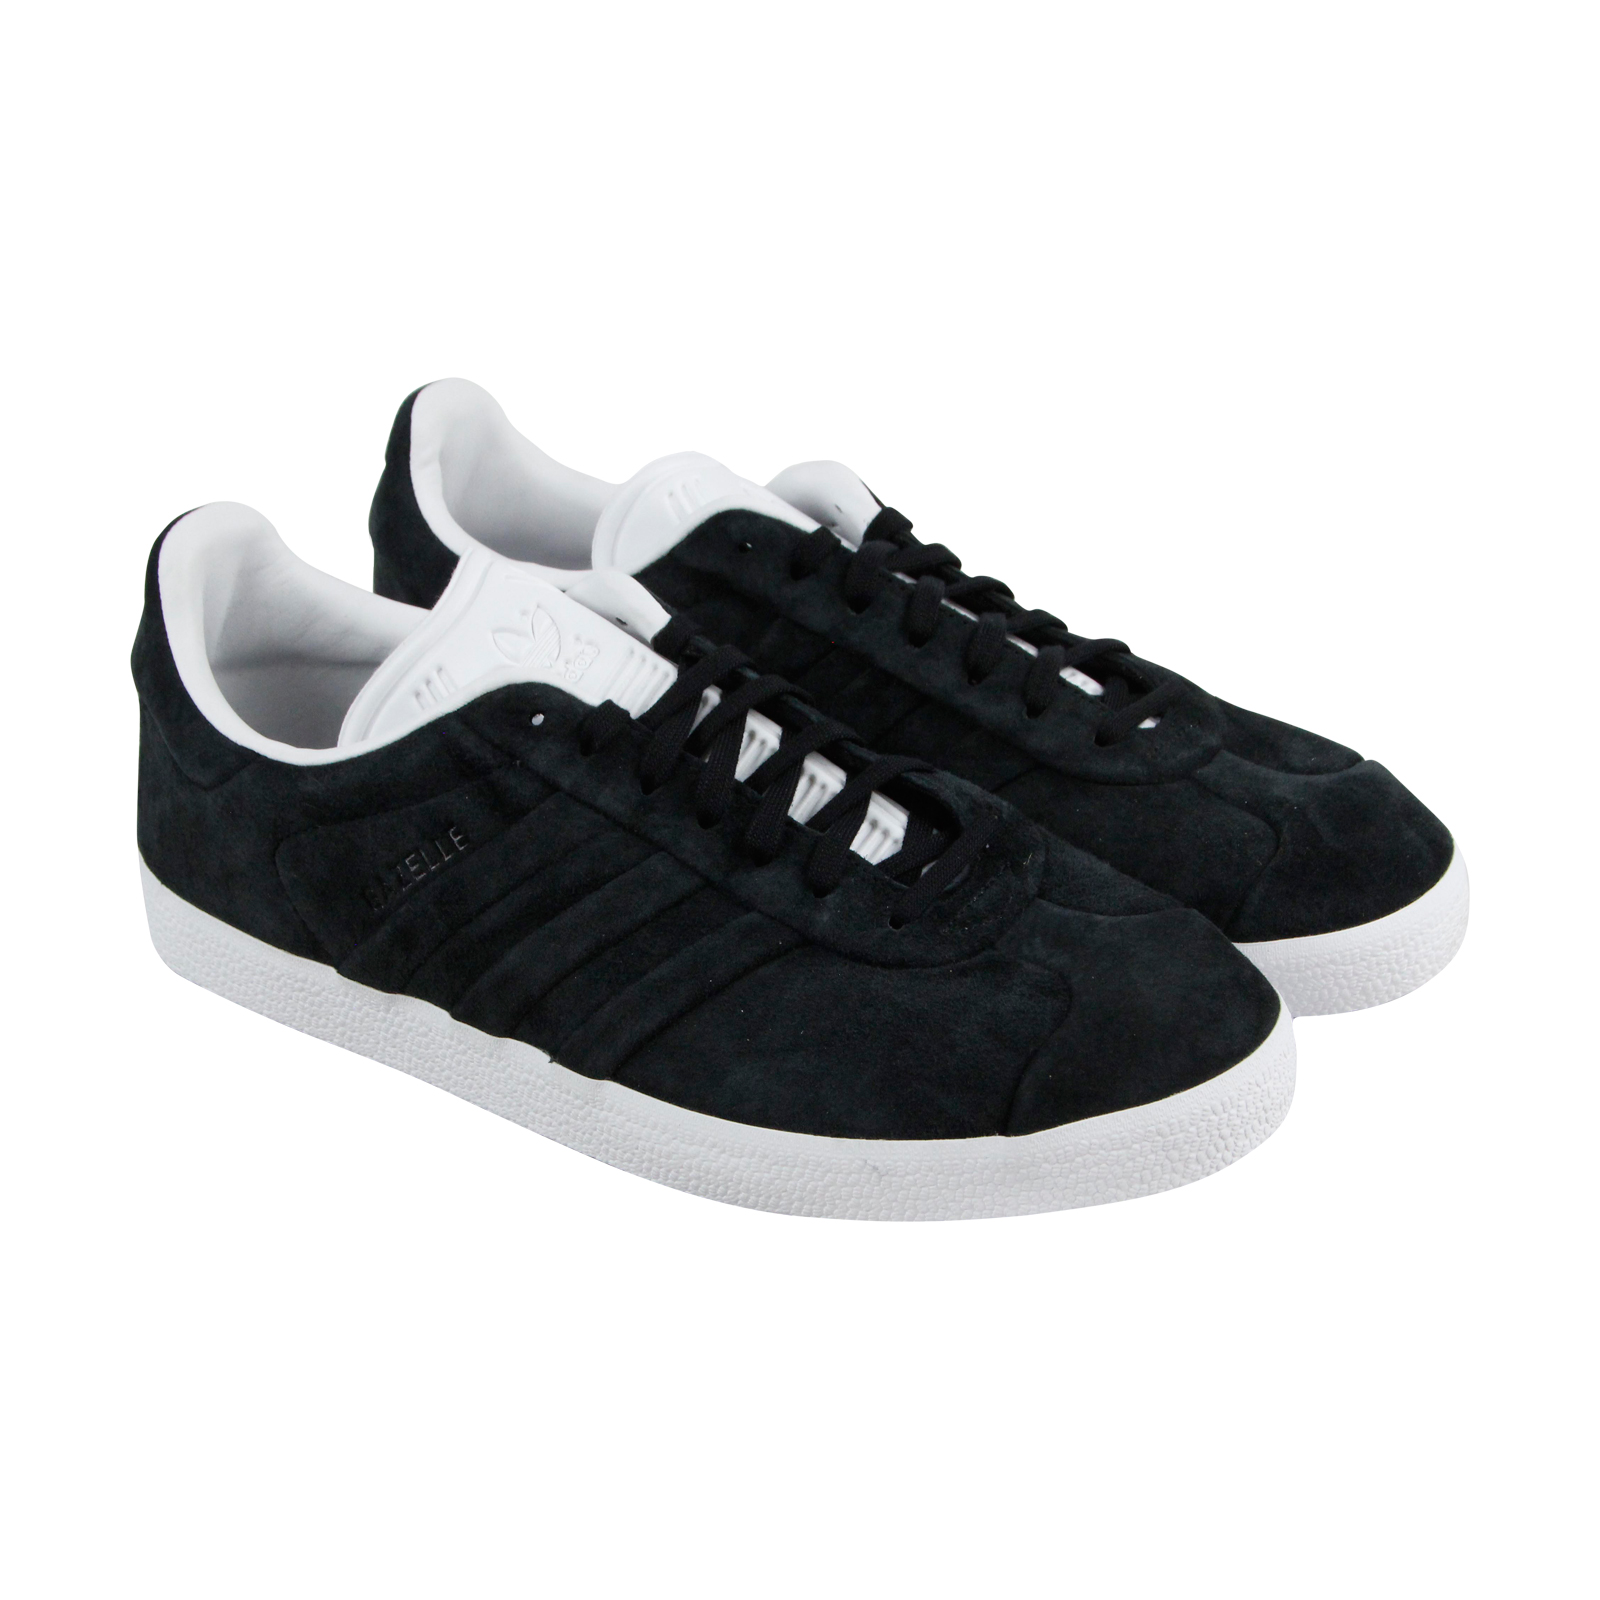 Adidas Gazelle Stitch And Turn hommes noir Nubuck Lace Up Sneakers Chaussures